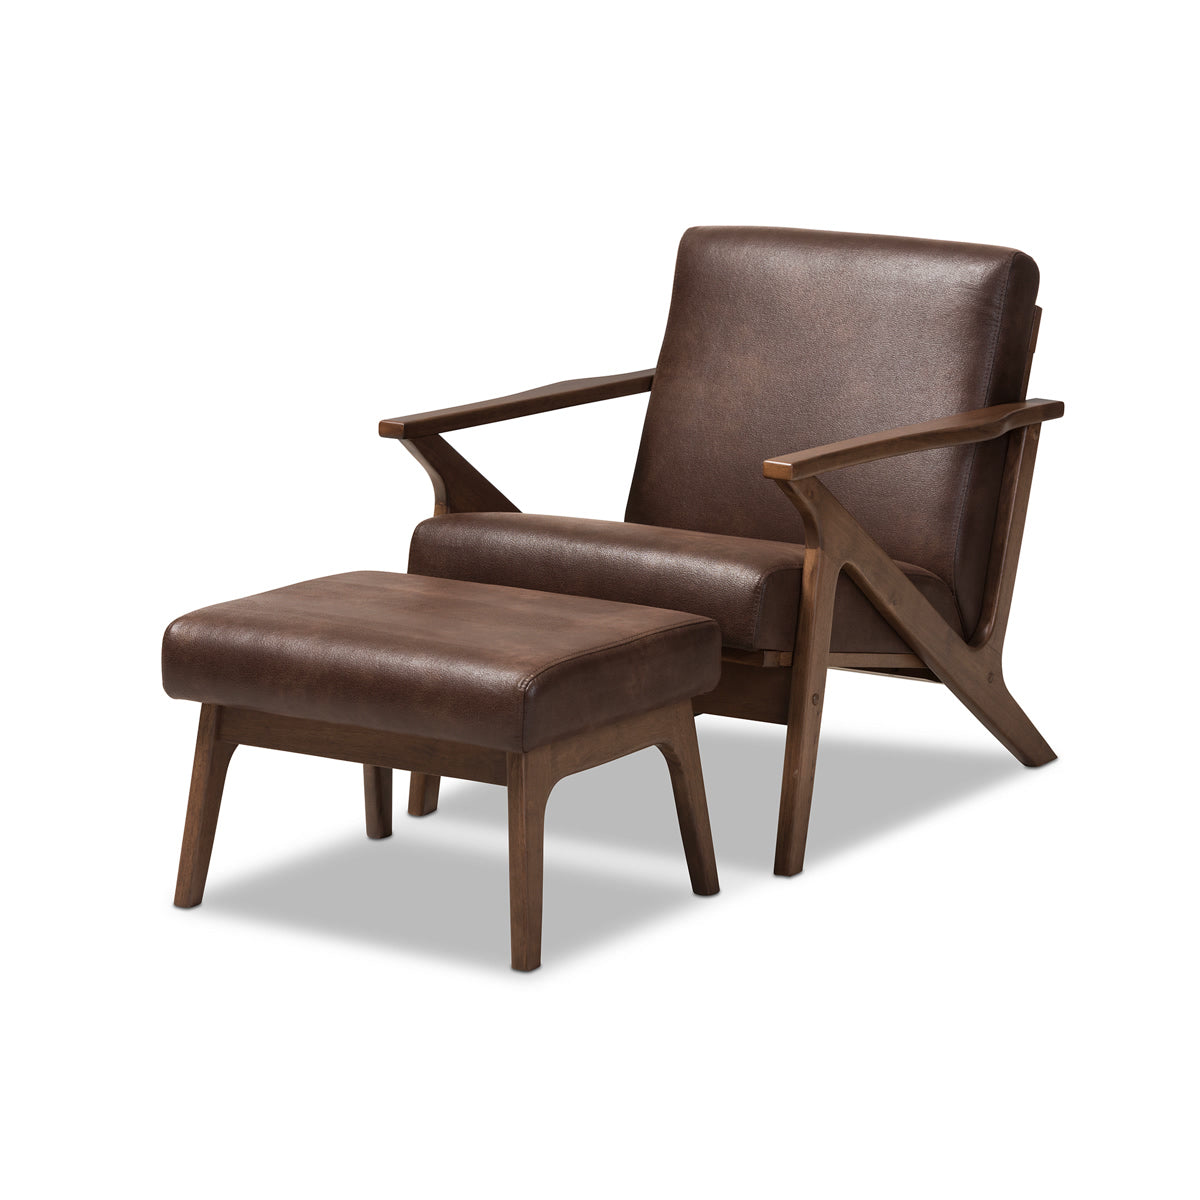 Baxton Studio Bianca Walnut Wood Brown Leather Lounge Chair U0026 Ottoman Set  Chairs HipModernHome ...